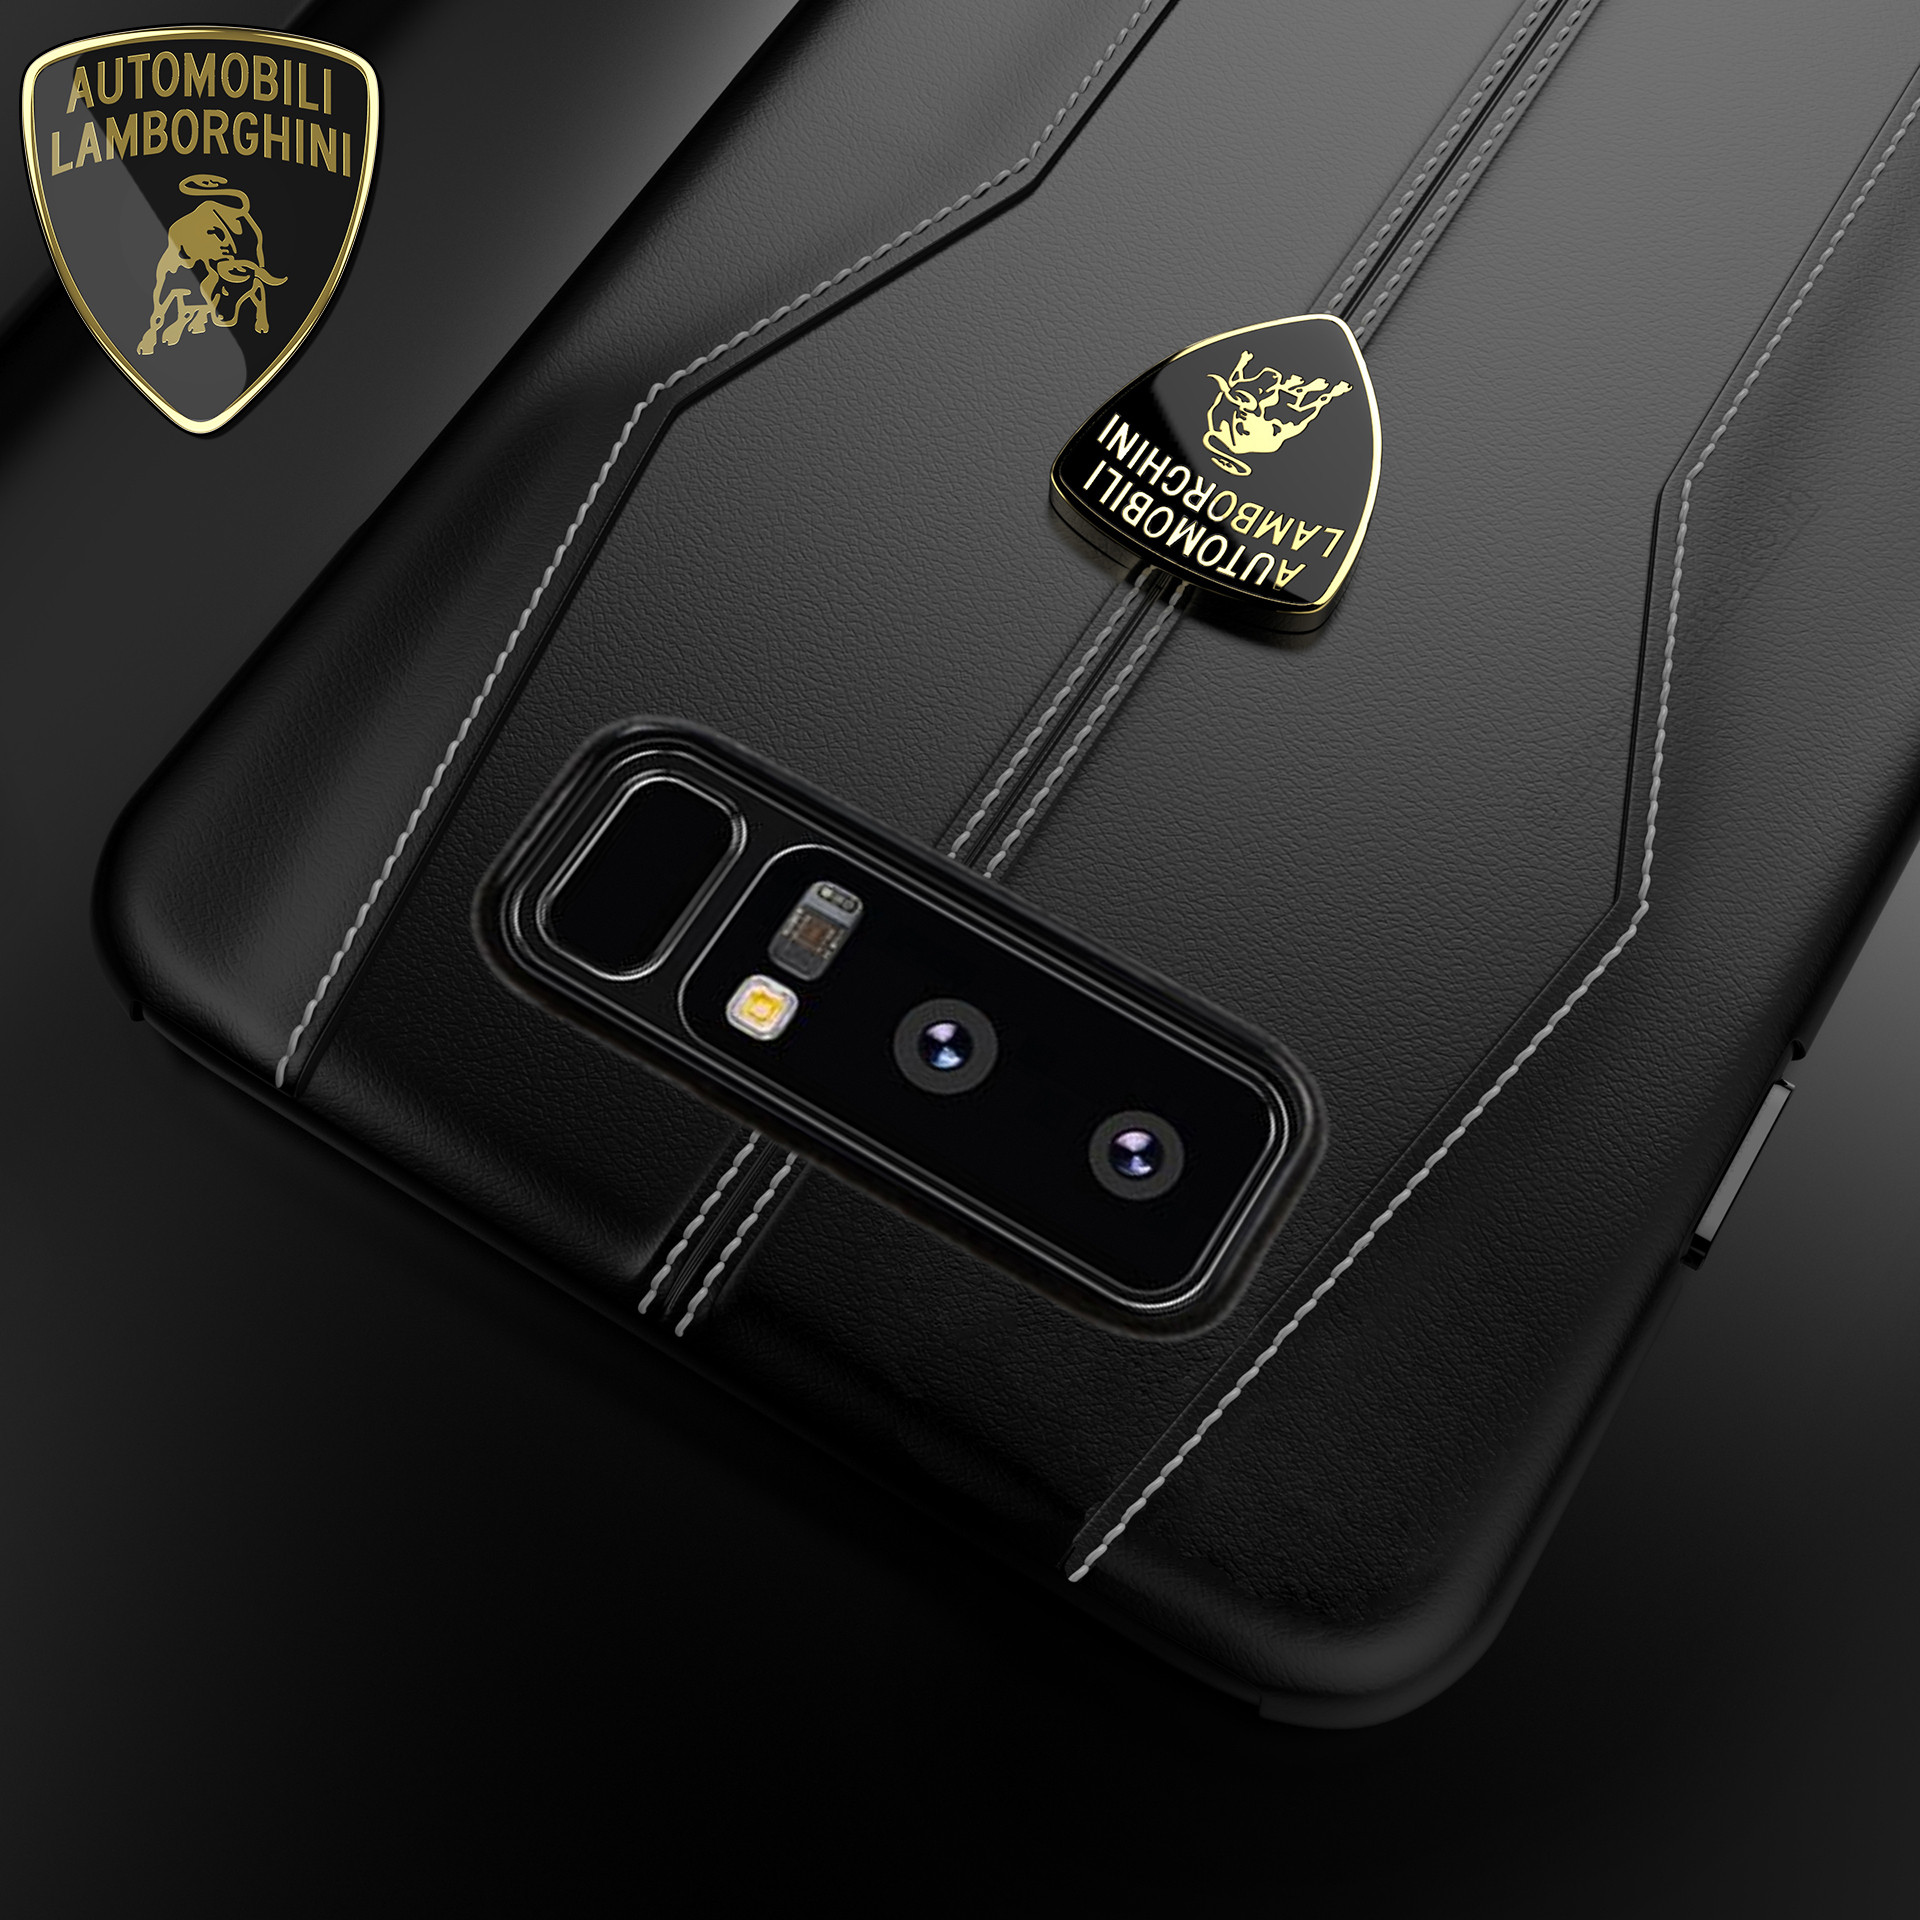 Lamborghini 174 Samsung Galaxy Note 8 Official Huracan D1